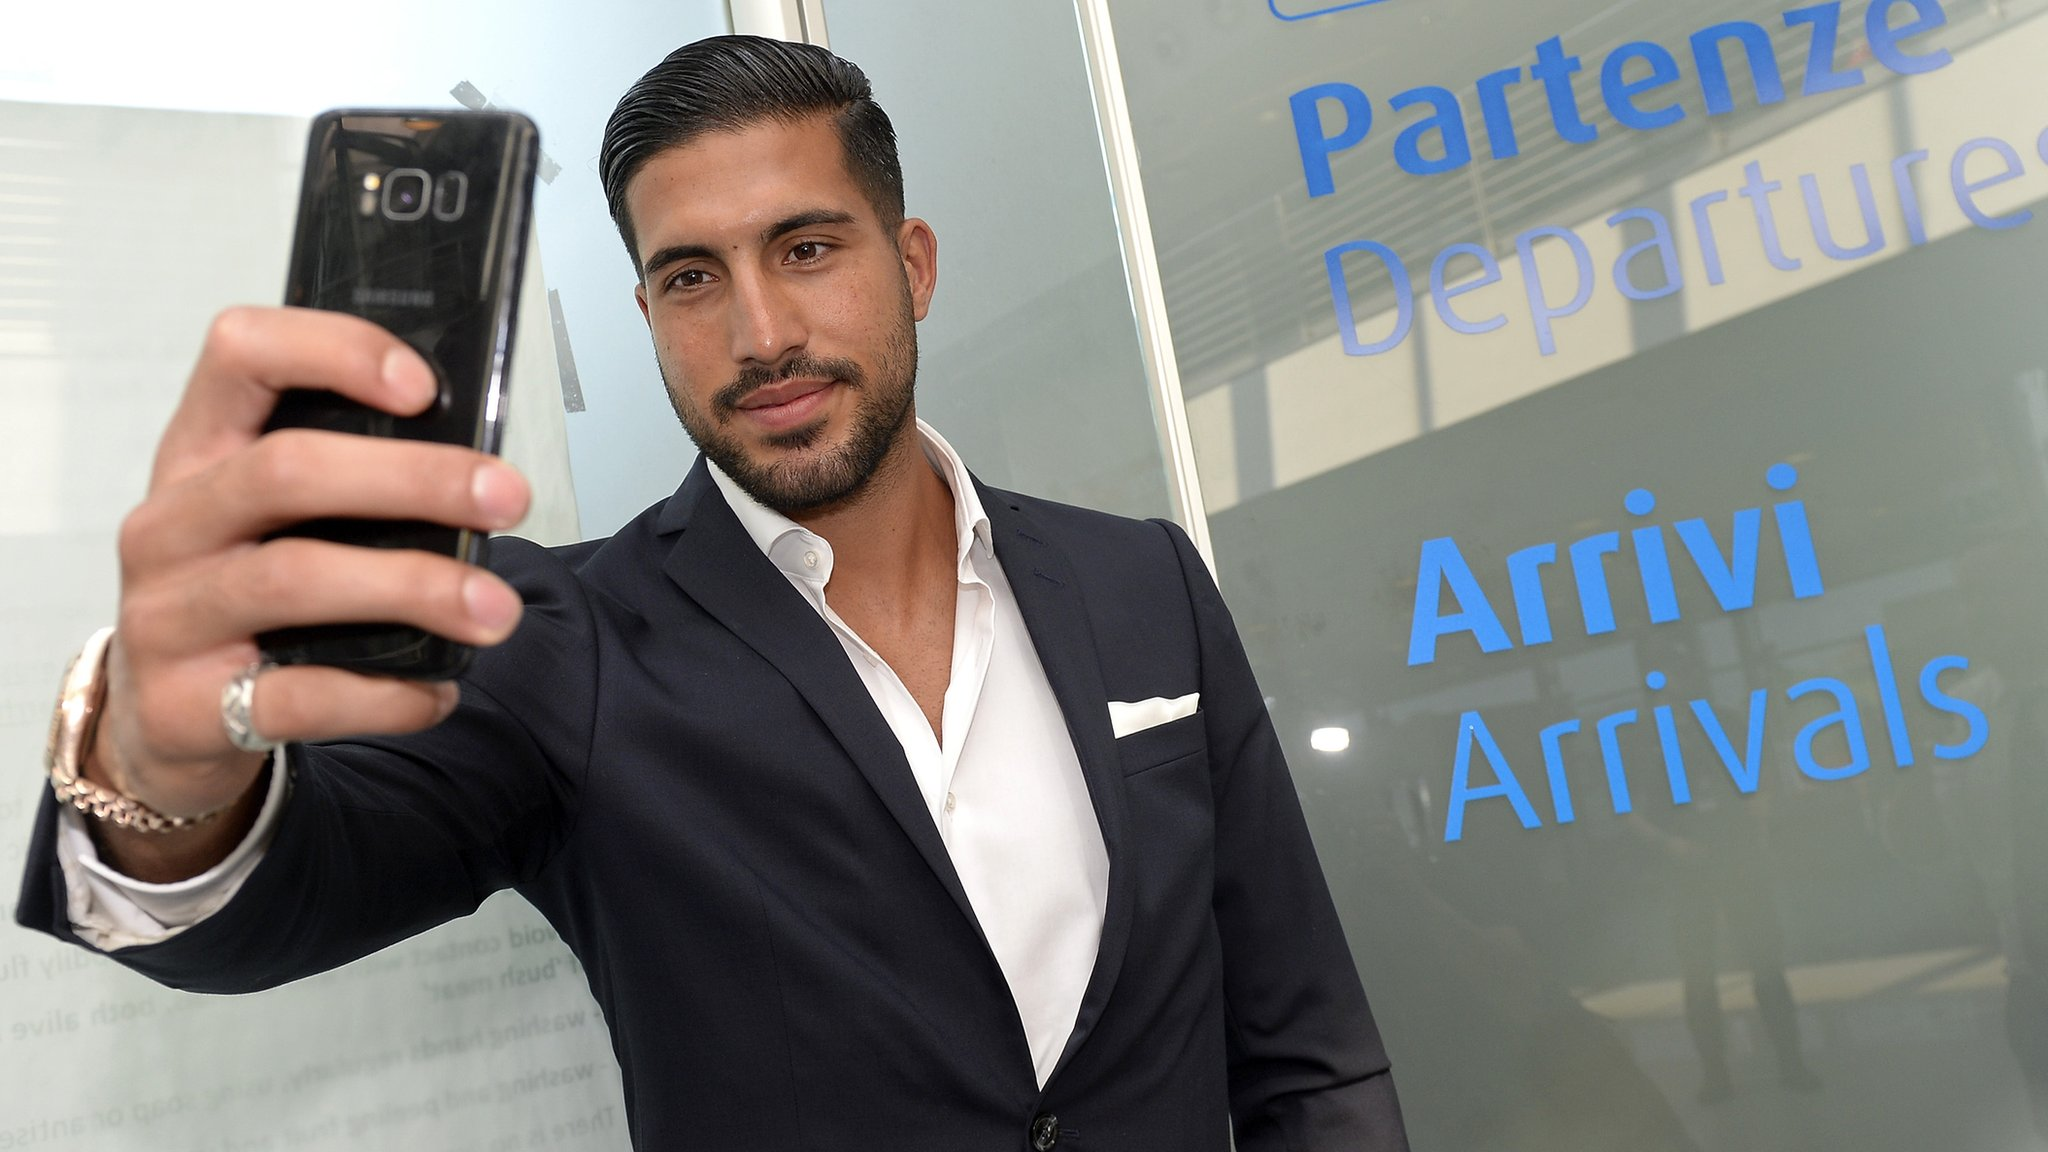 Emre Can: Juventus confirm signing of midfielder from Liverpool